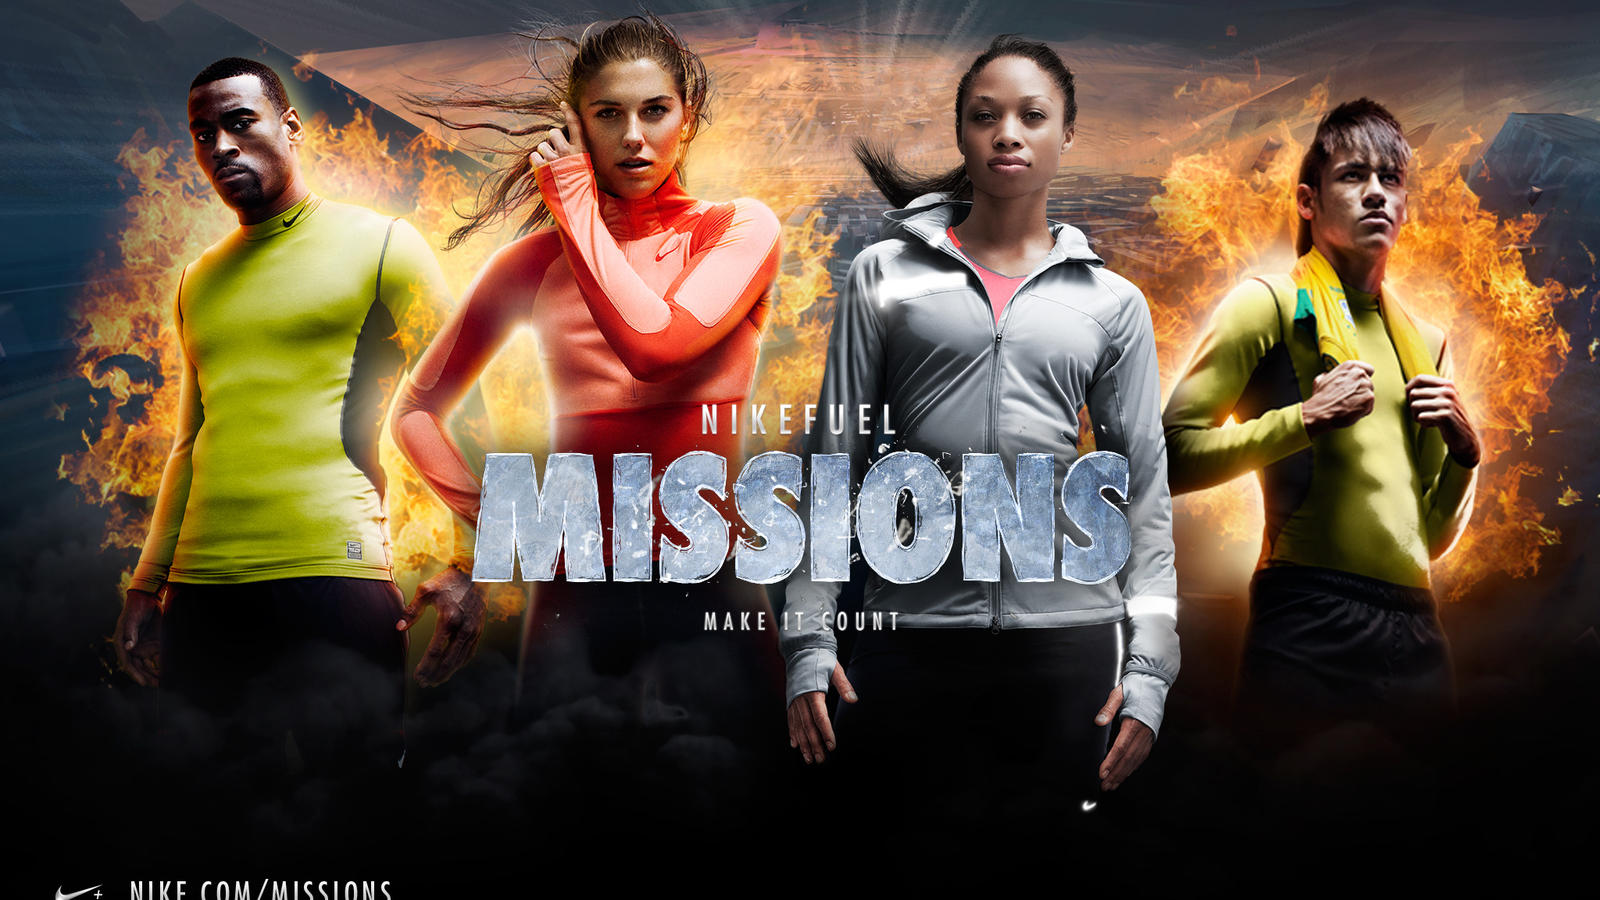 NikeFuel Missions is a classic example of share-ability and gamification as it turned daily exercise into an exciting game. Source:    Nike.